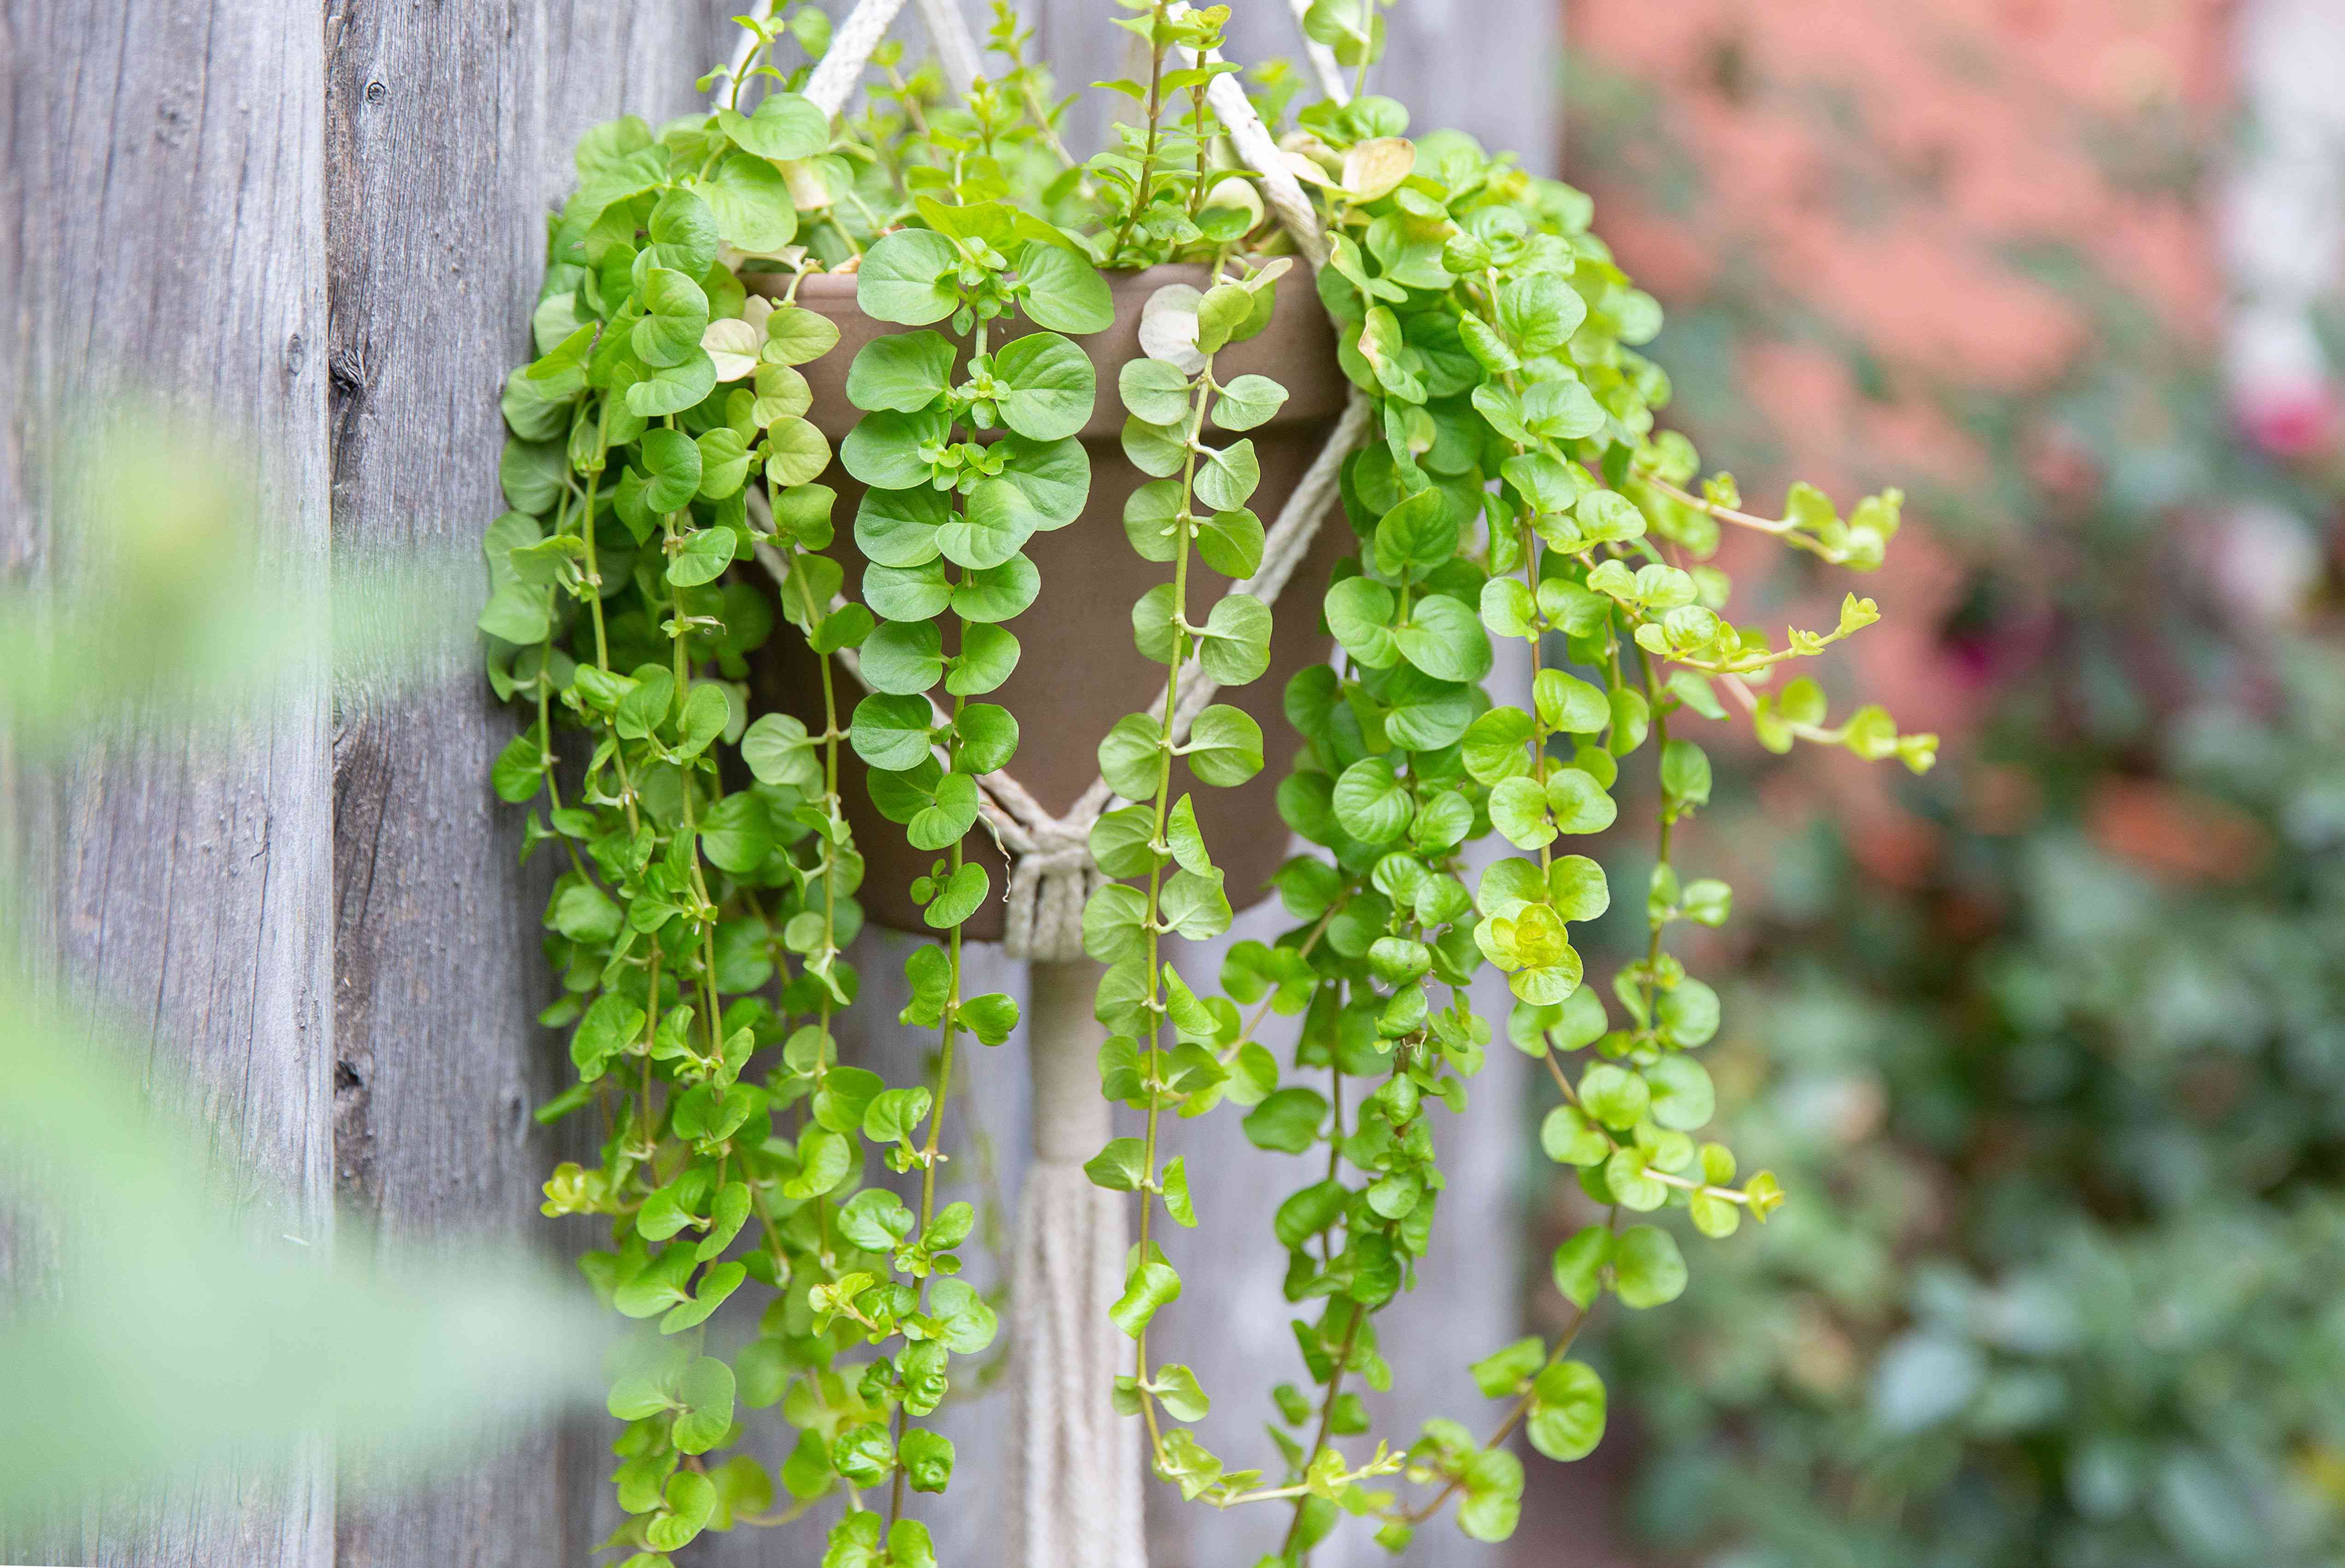 Creeping jenny plant in hanging planter with round lime-green leaves